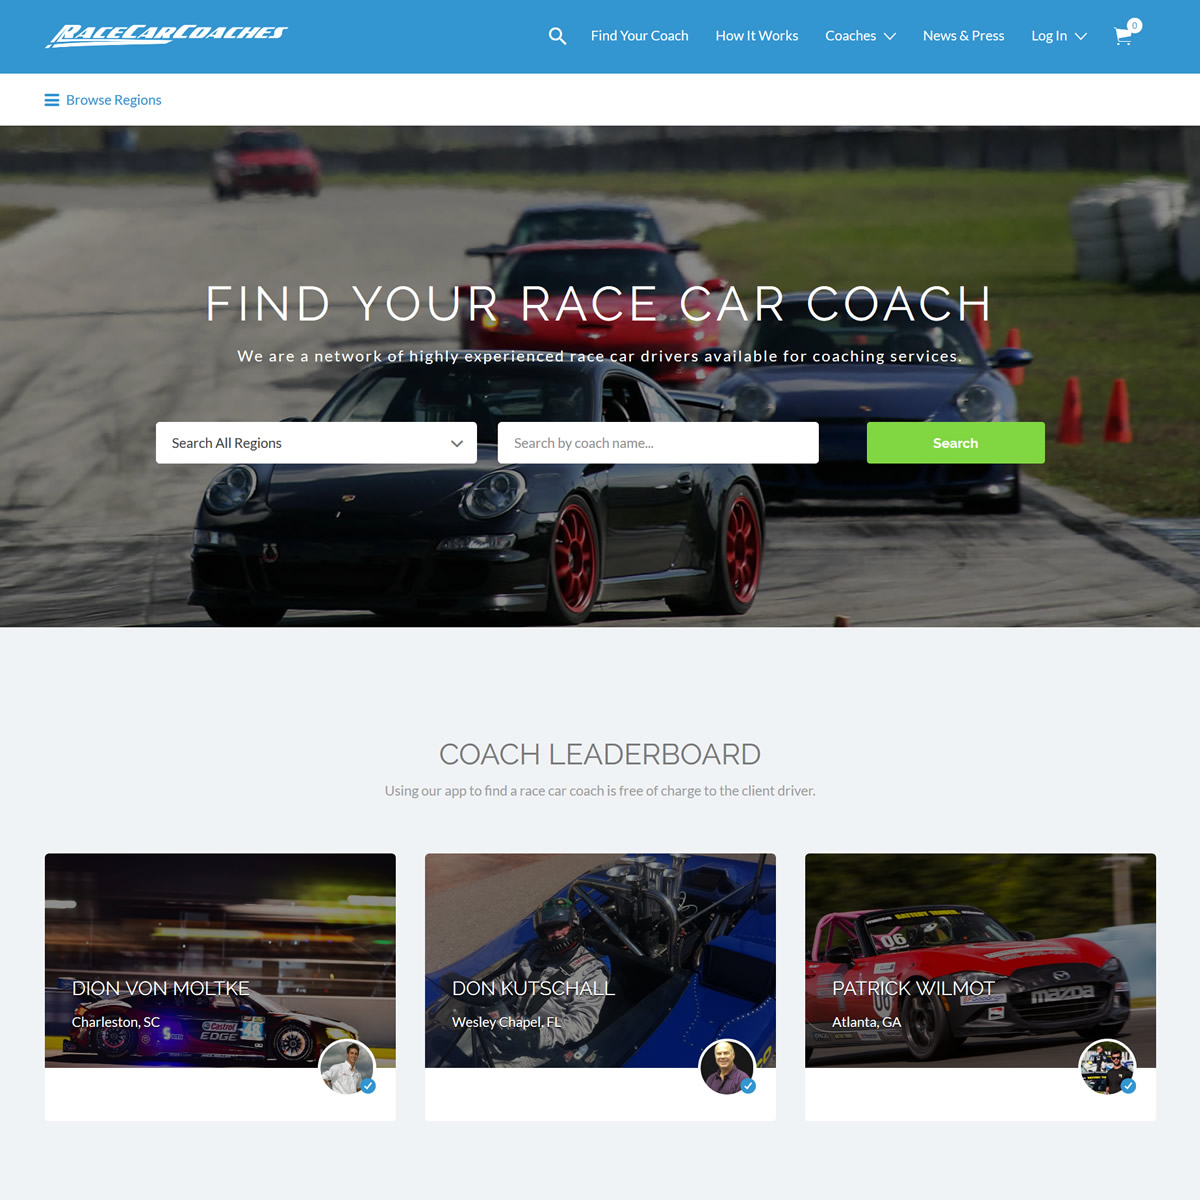 race car coaches ryan dalziel patron gohooper web design miami